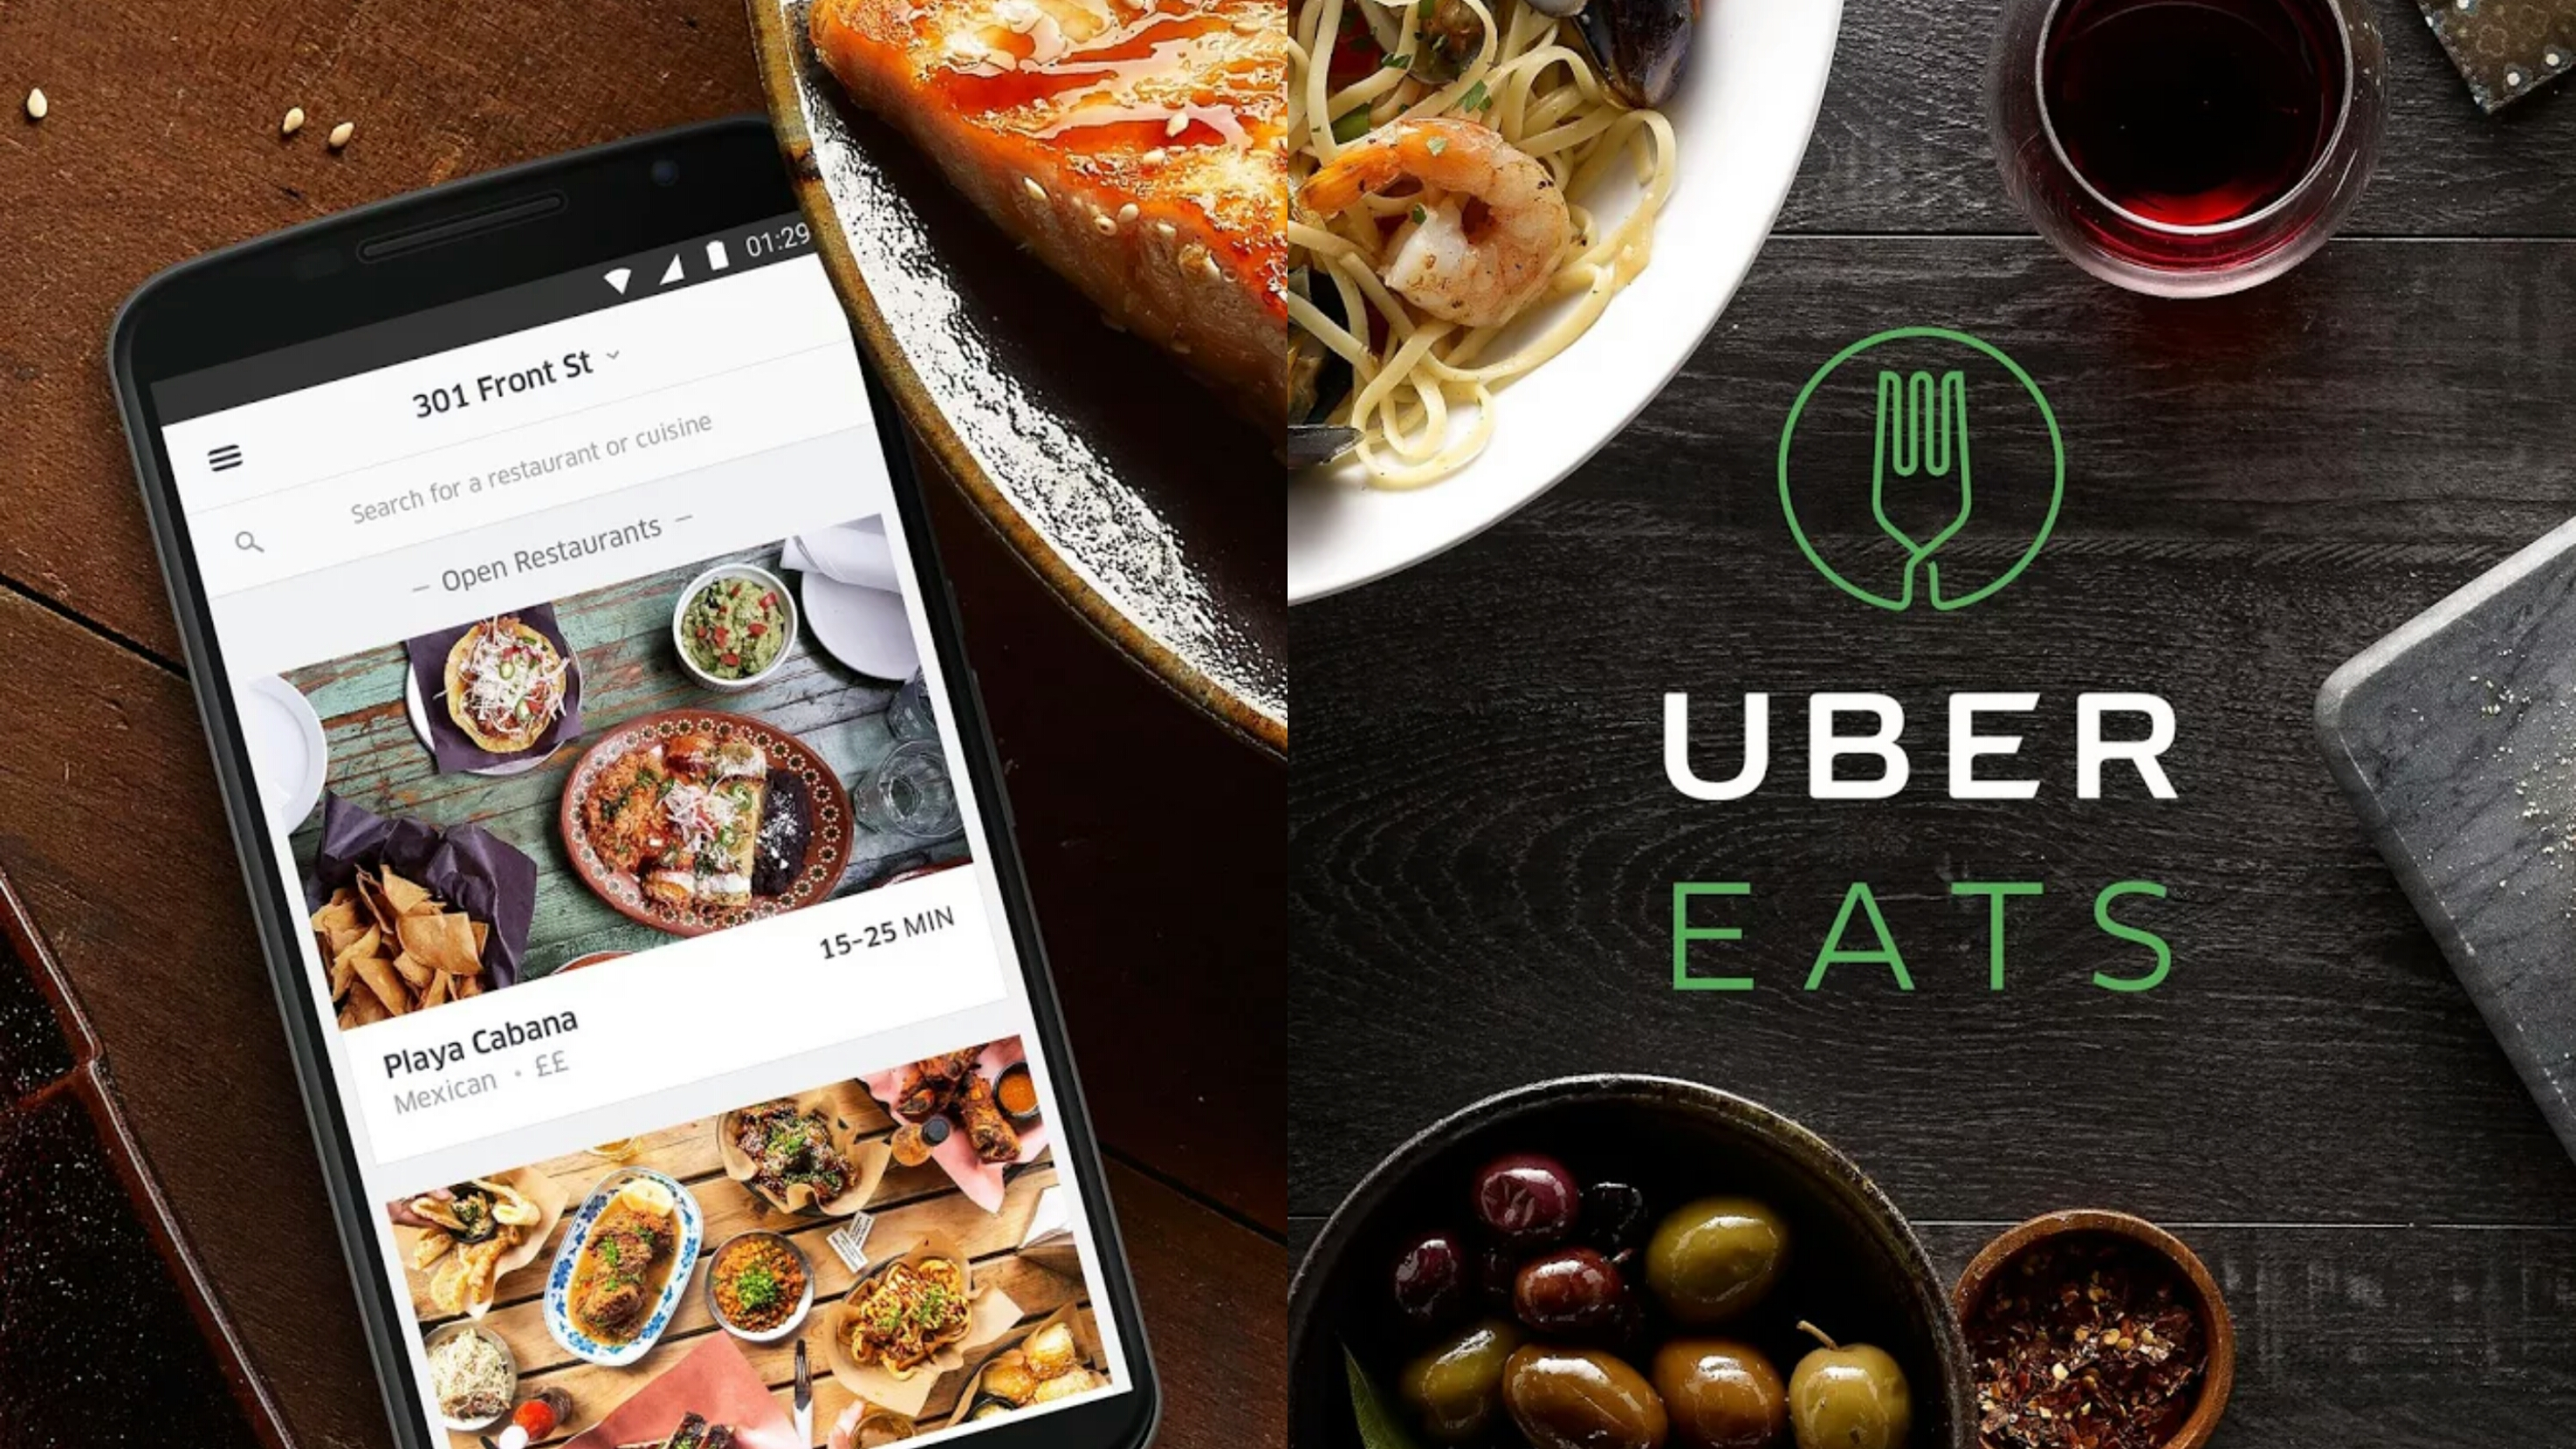 Uber Eats in San Francisco